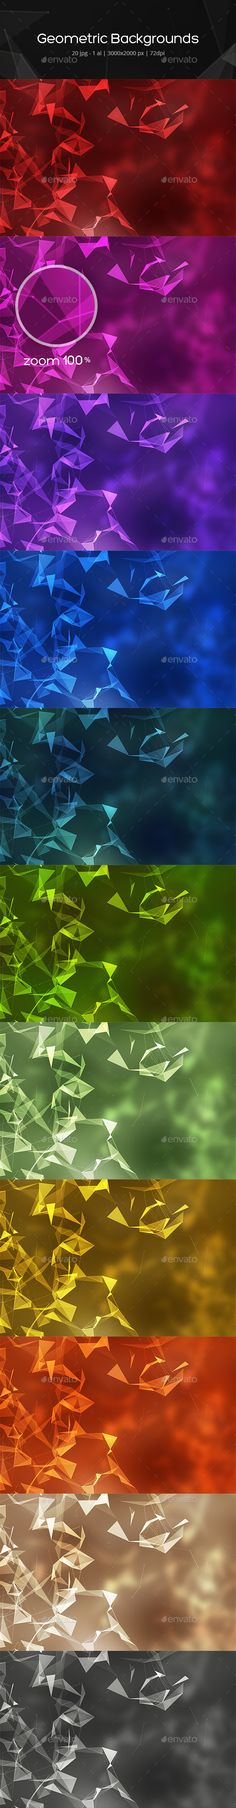 Geometric Backgrounds  — JPG Image #geometric shapes #triangles • Download ➝ https://graphicriver.net/item/geometric-backgrounds/18393206?ref=pxcr